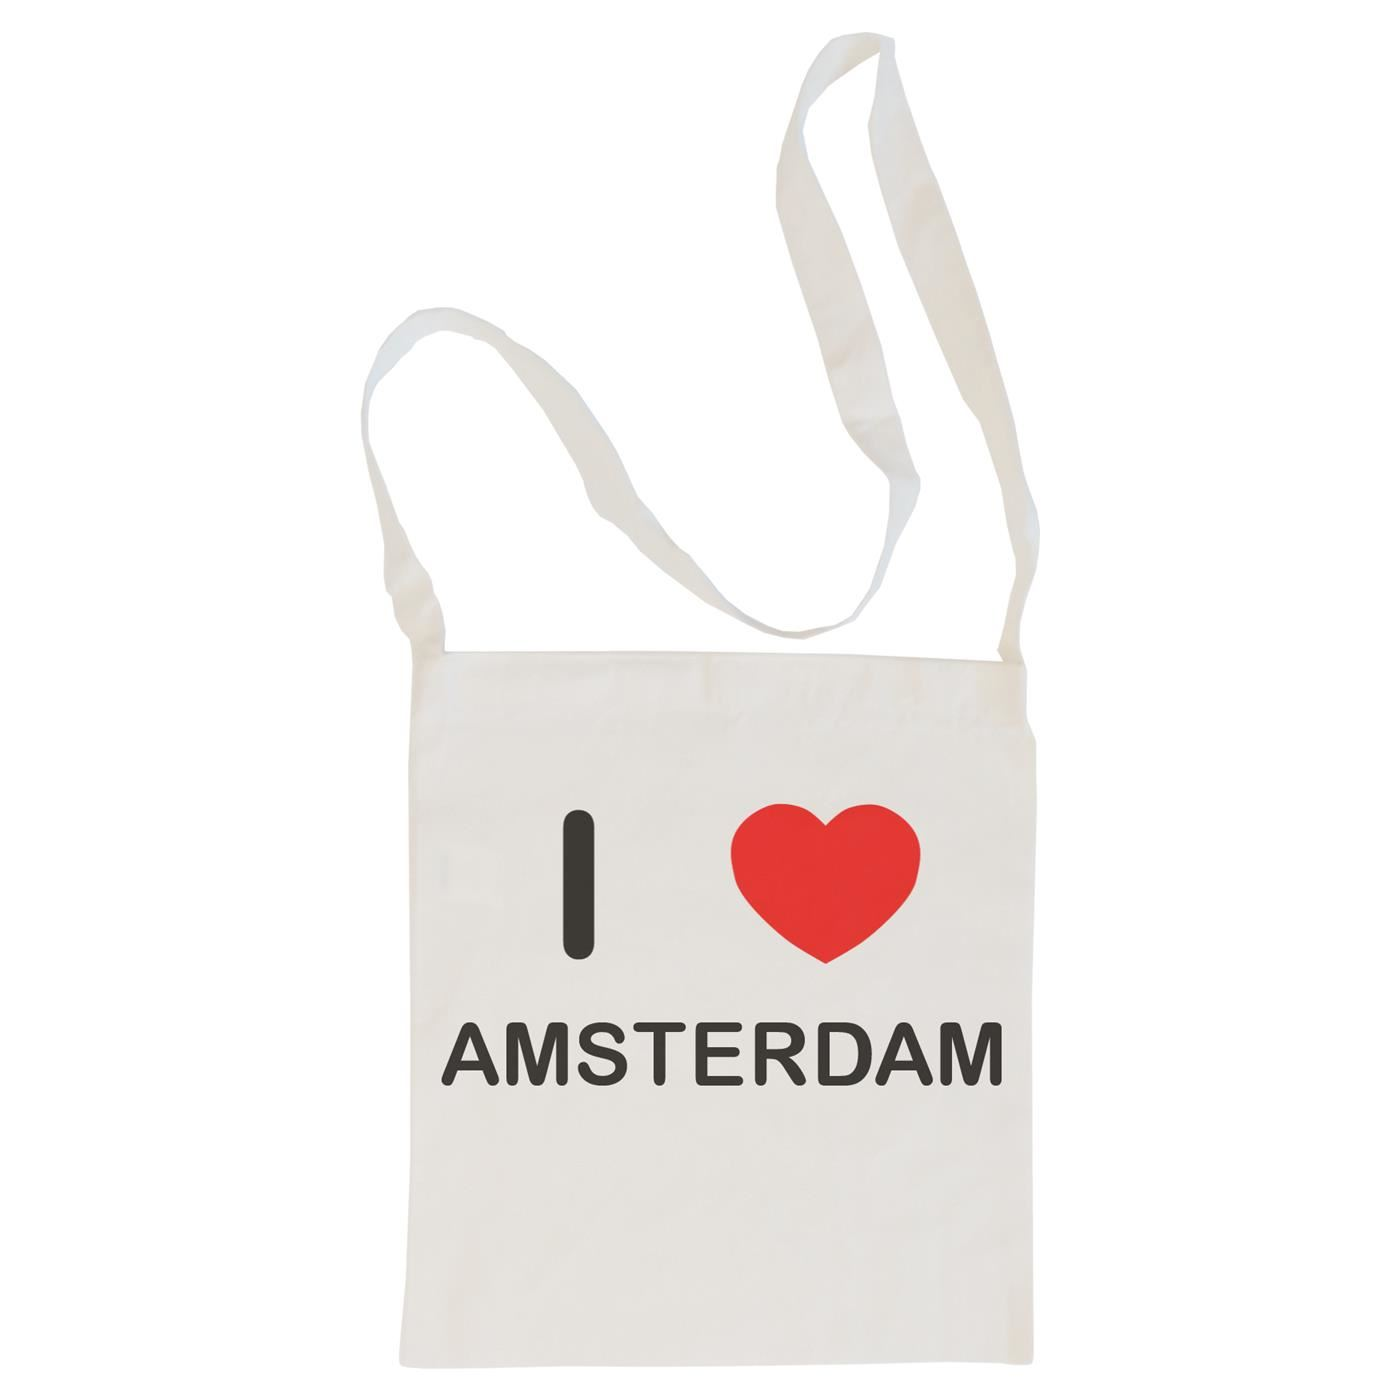 I Love Amsterdam - Cotton Bag | Size choice Tote, Shopper or Sling